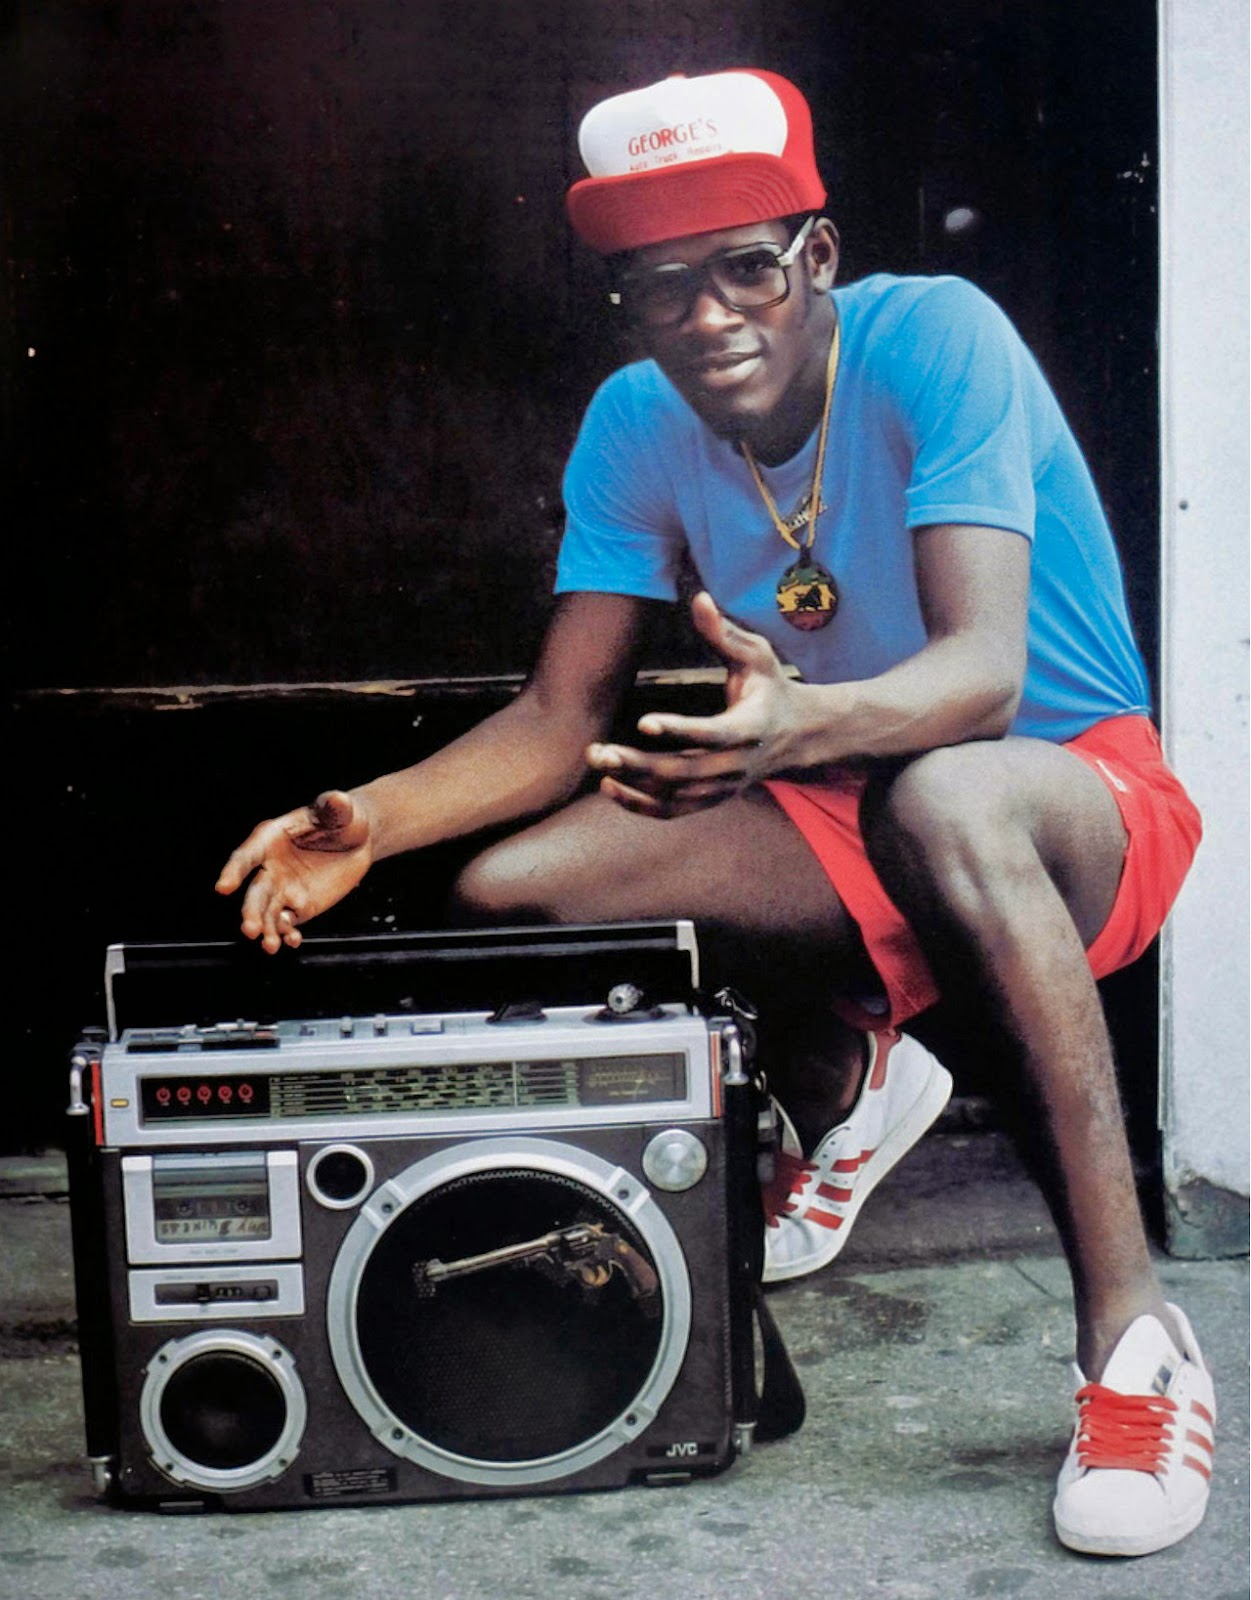 Vintage Everyday: New York's Hip-Hop Scene From The 1980s